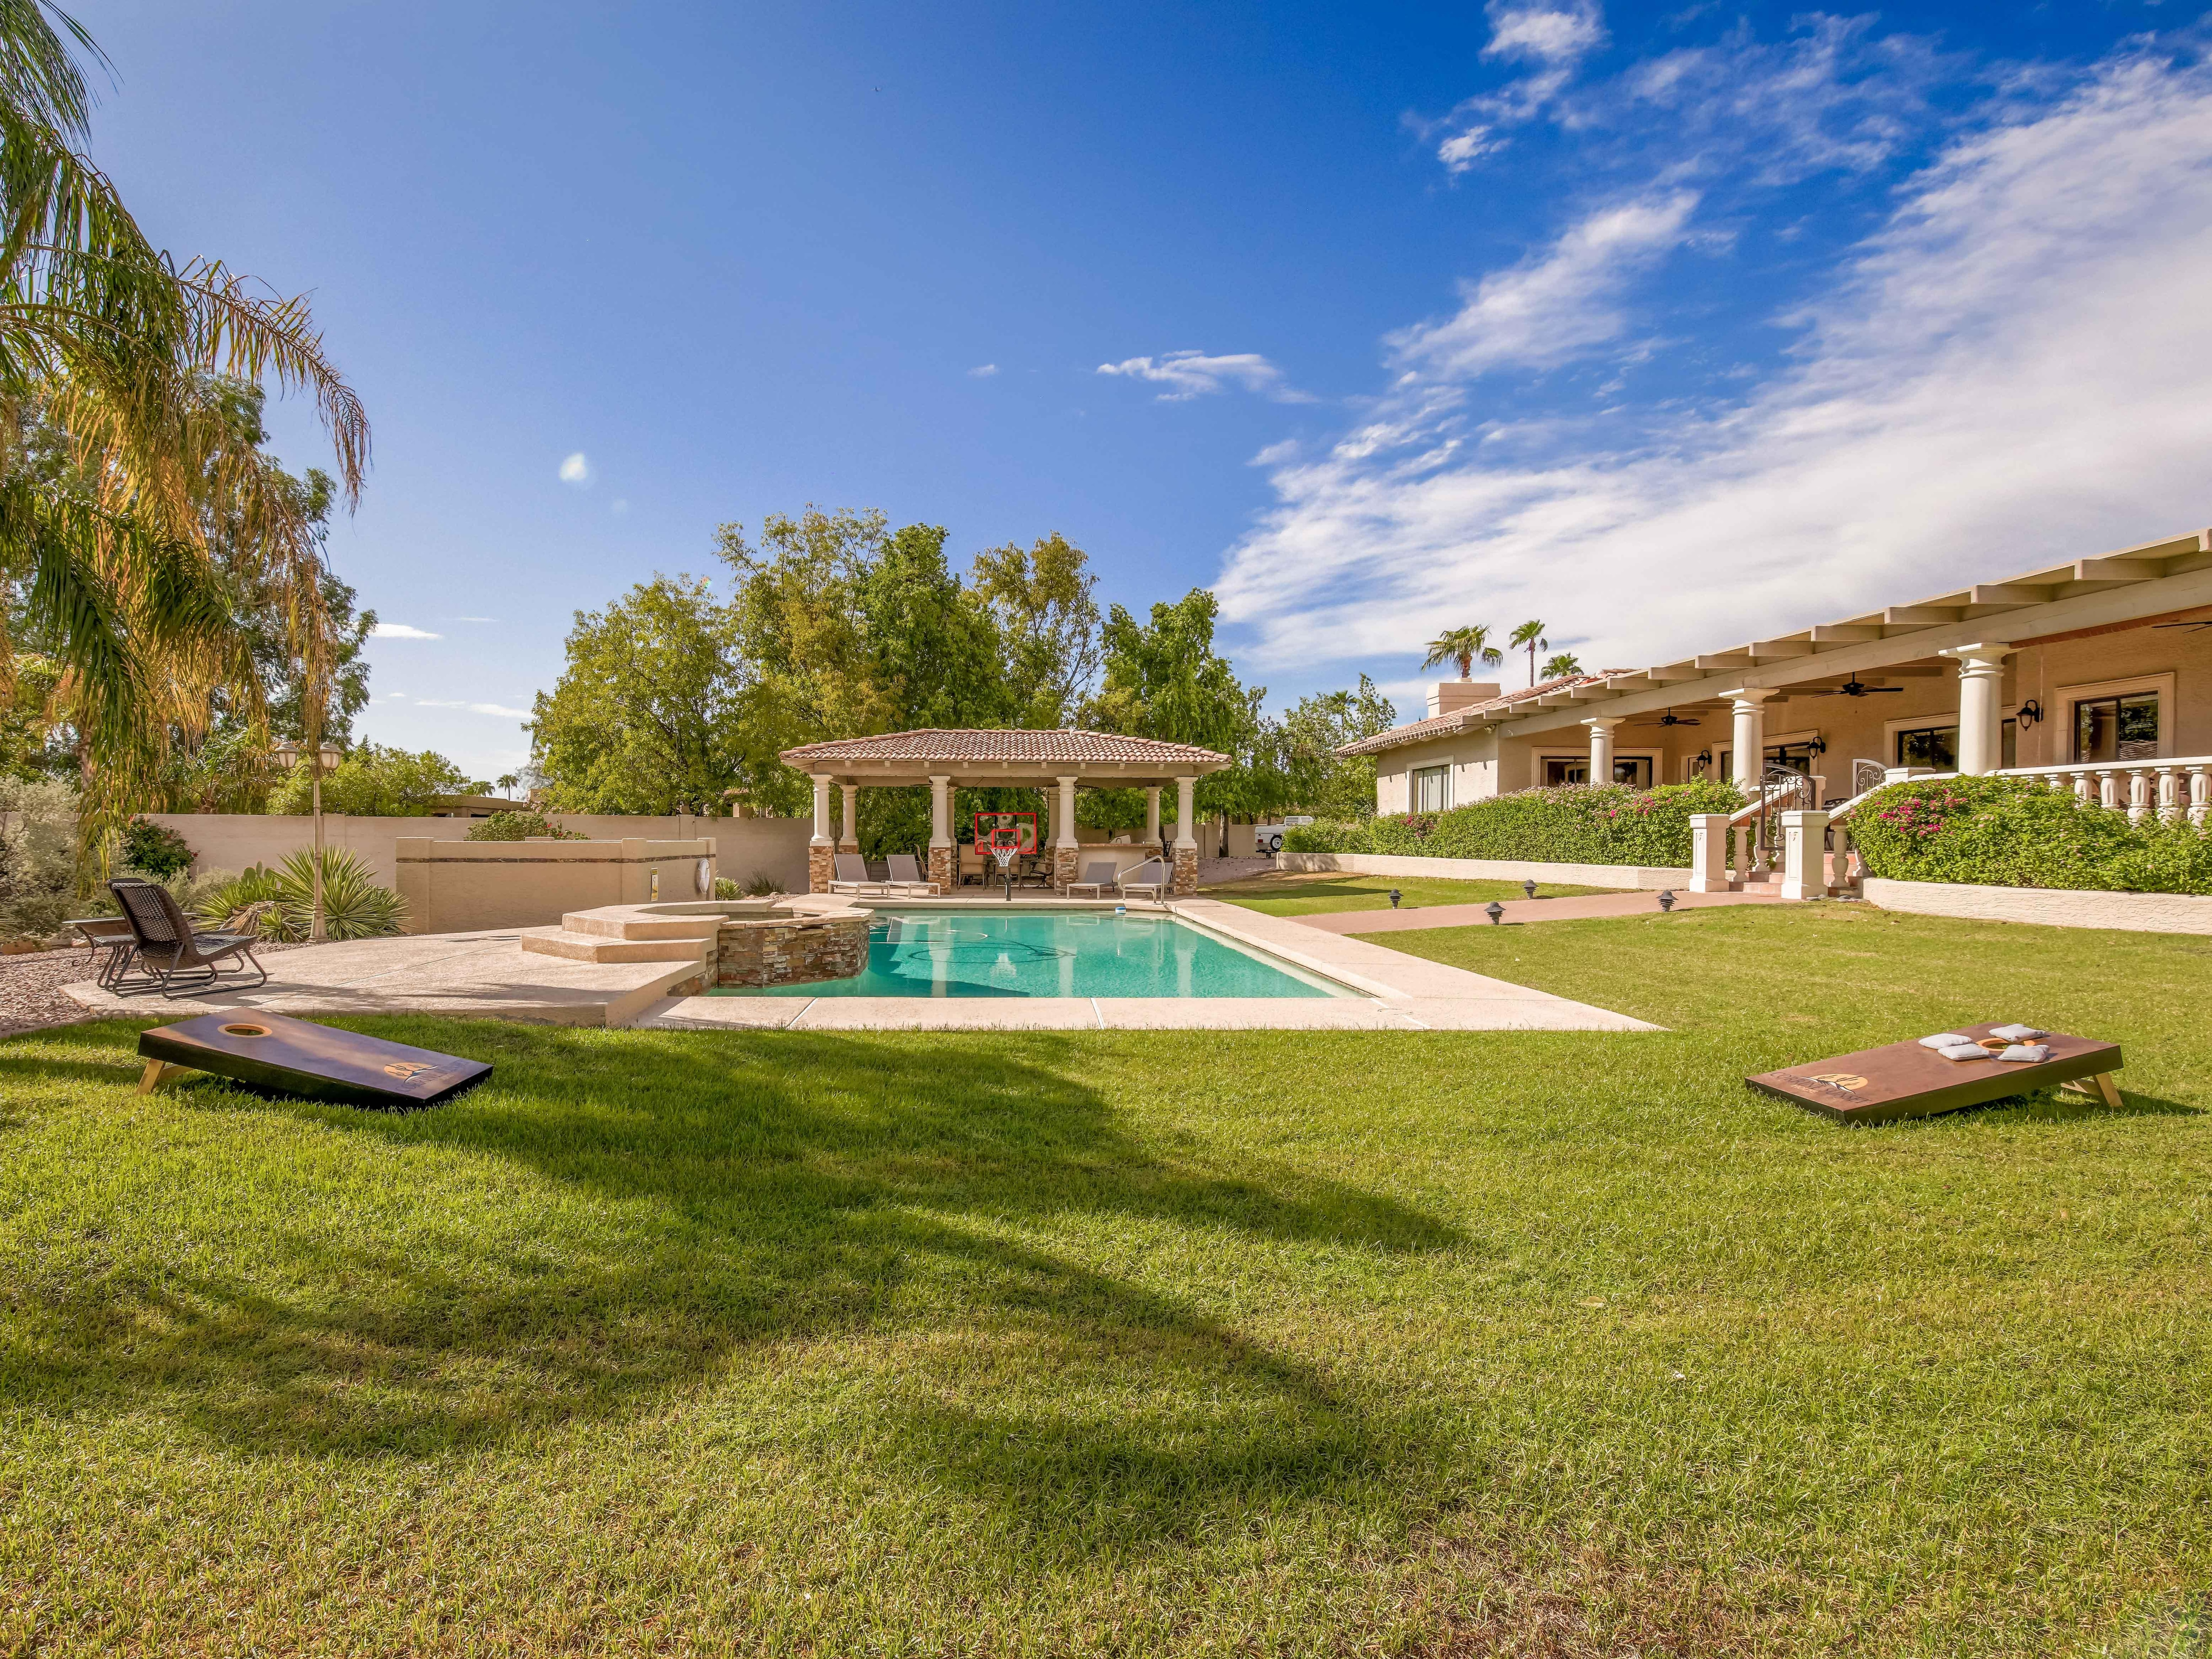 Welcome to Scottsdale! This luxury home is professionally managed by TurnKey Vacation Rentals.